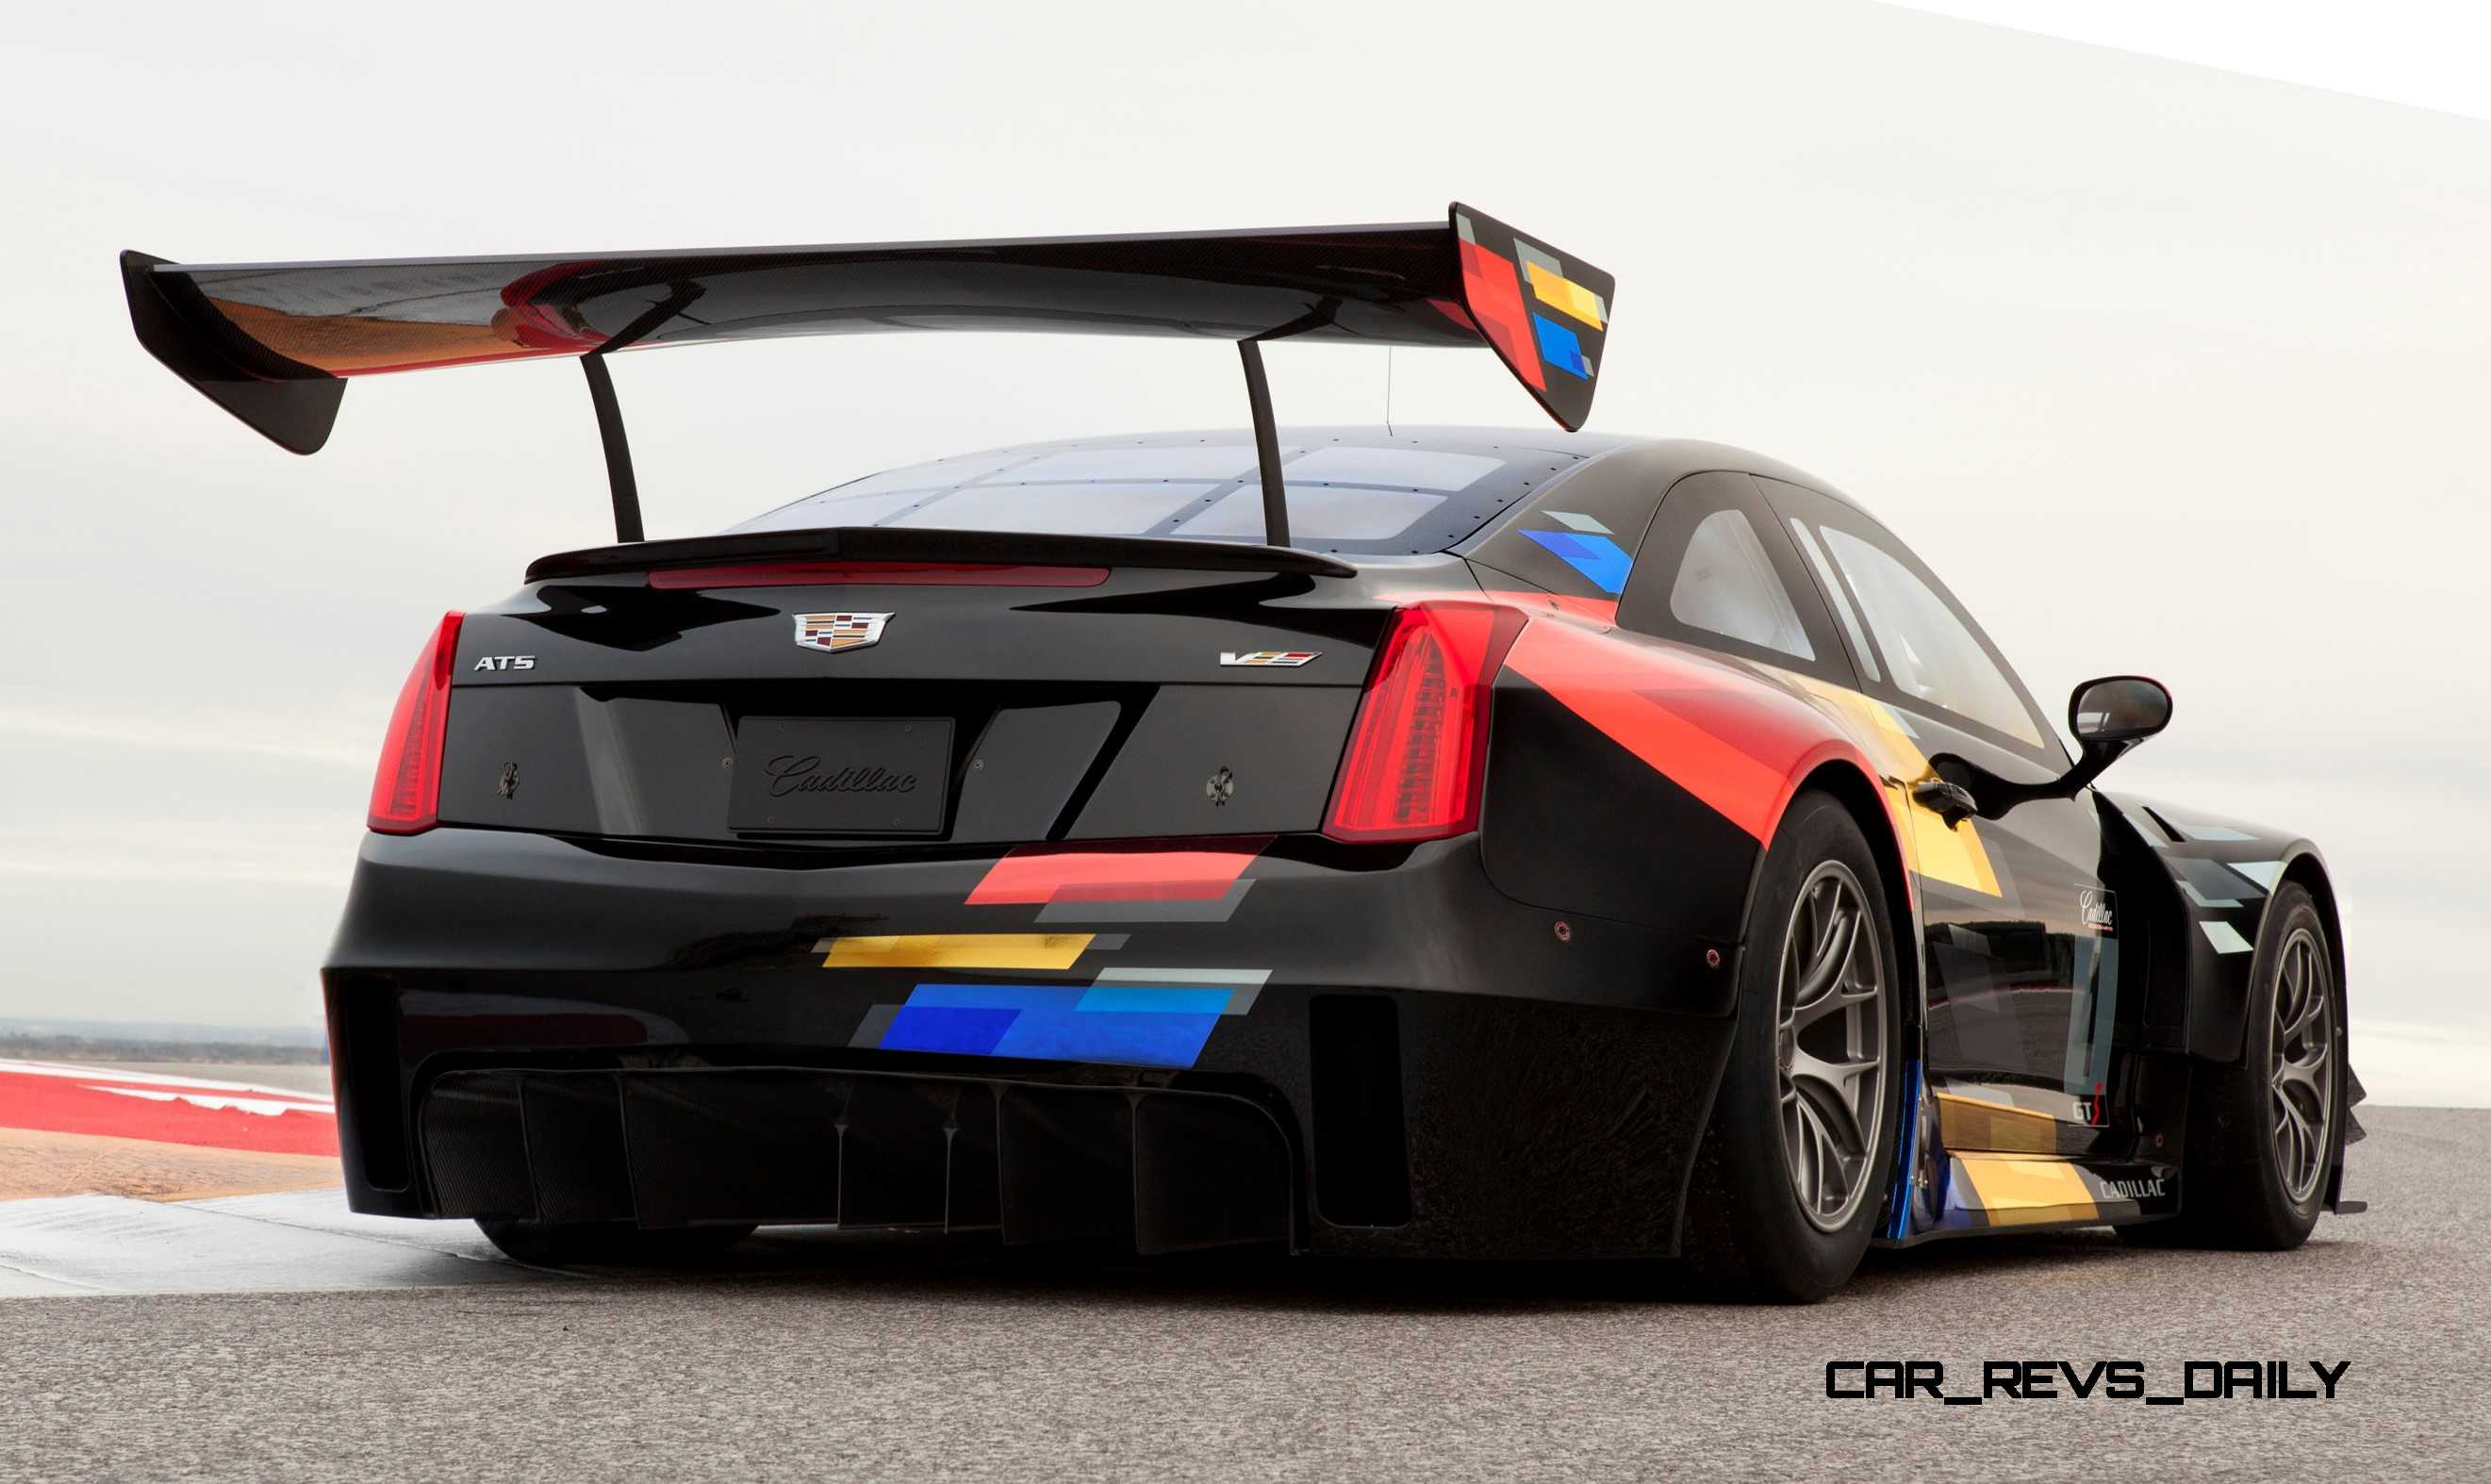 2015 Cadillac Ats V R Is Fia Gt3 Racecar Writ Large In